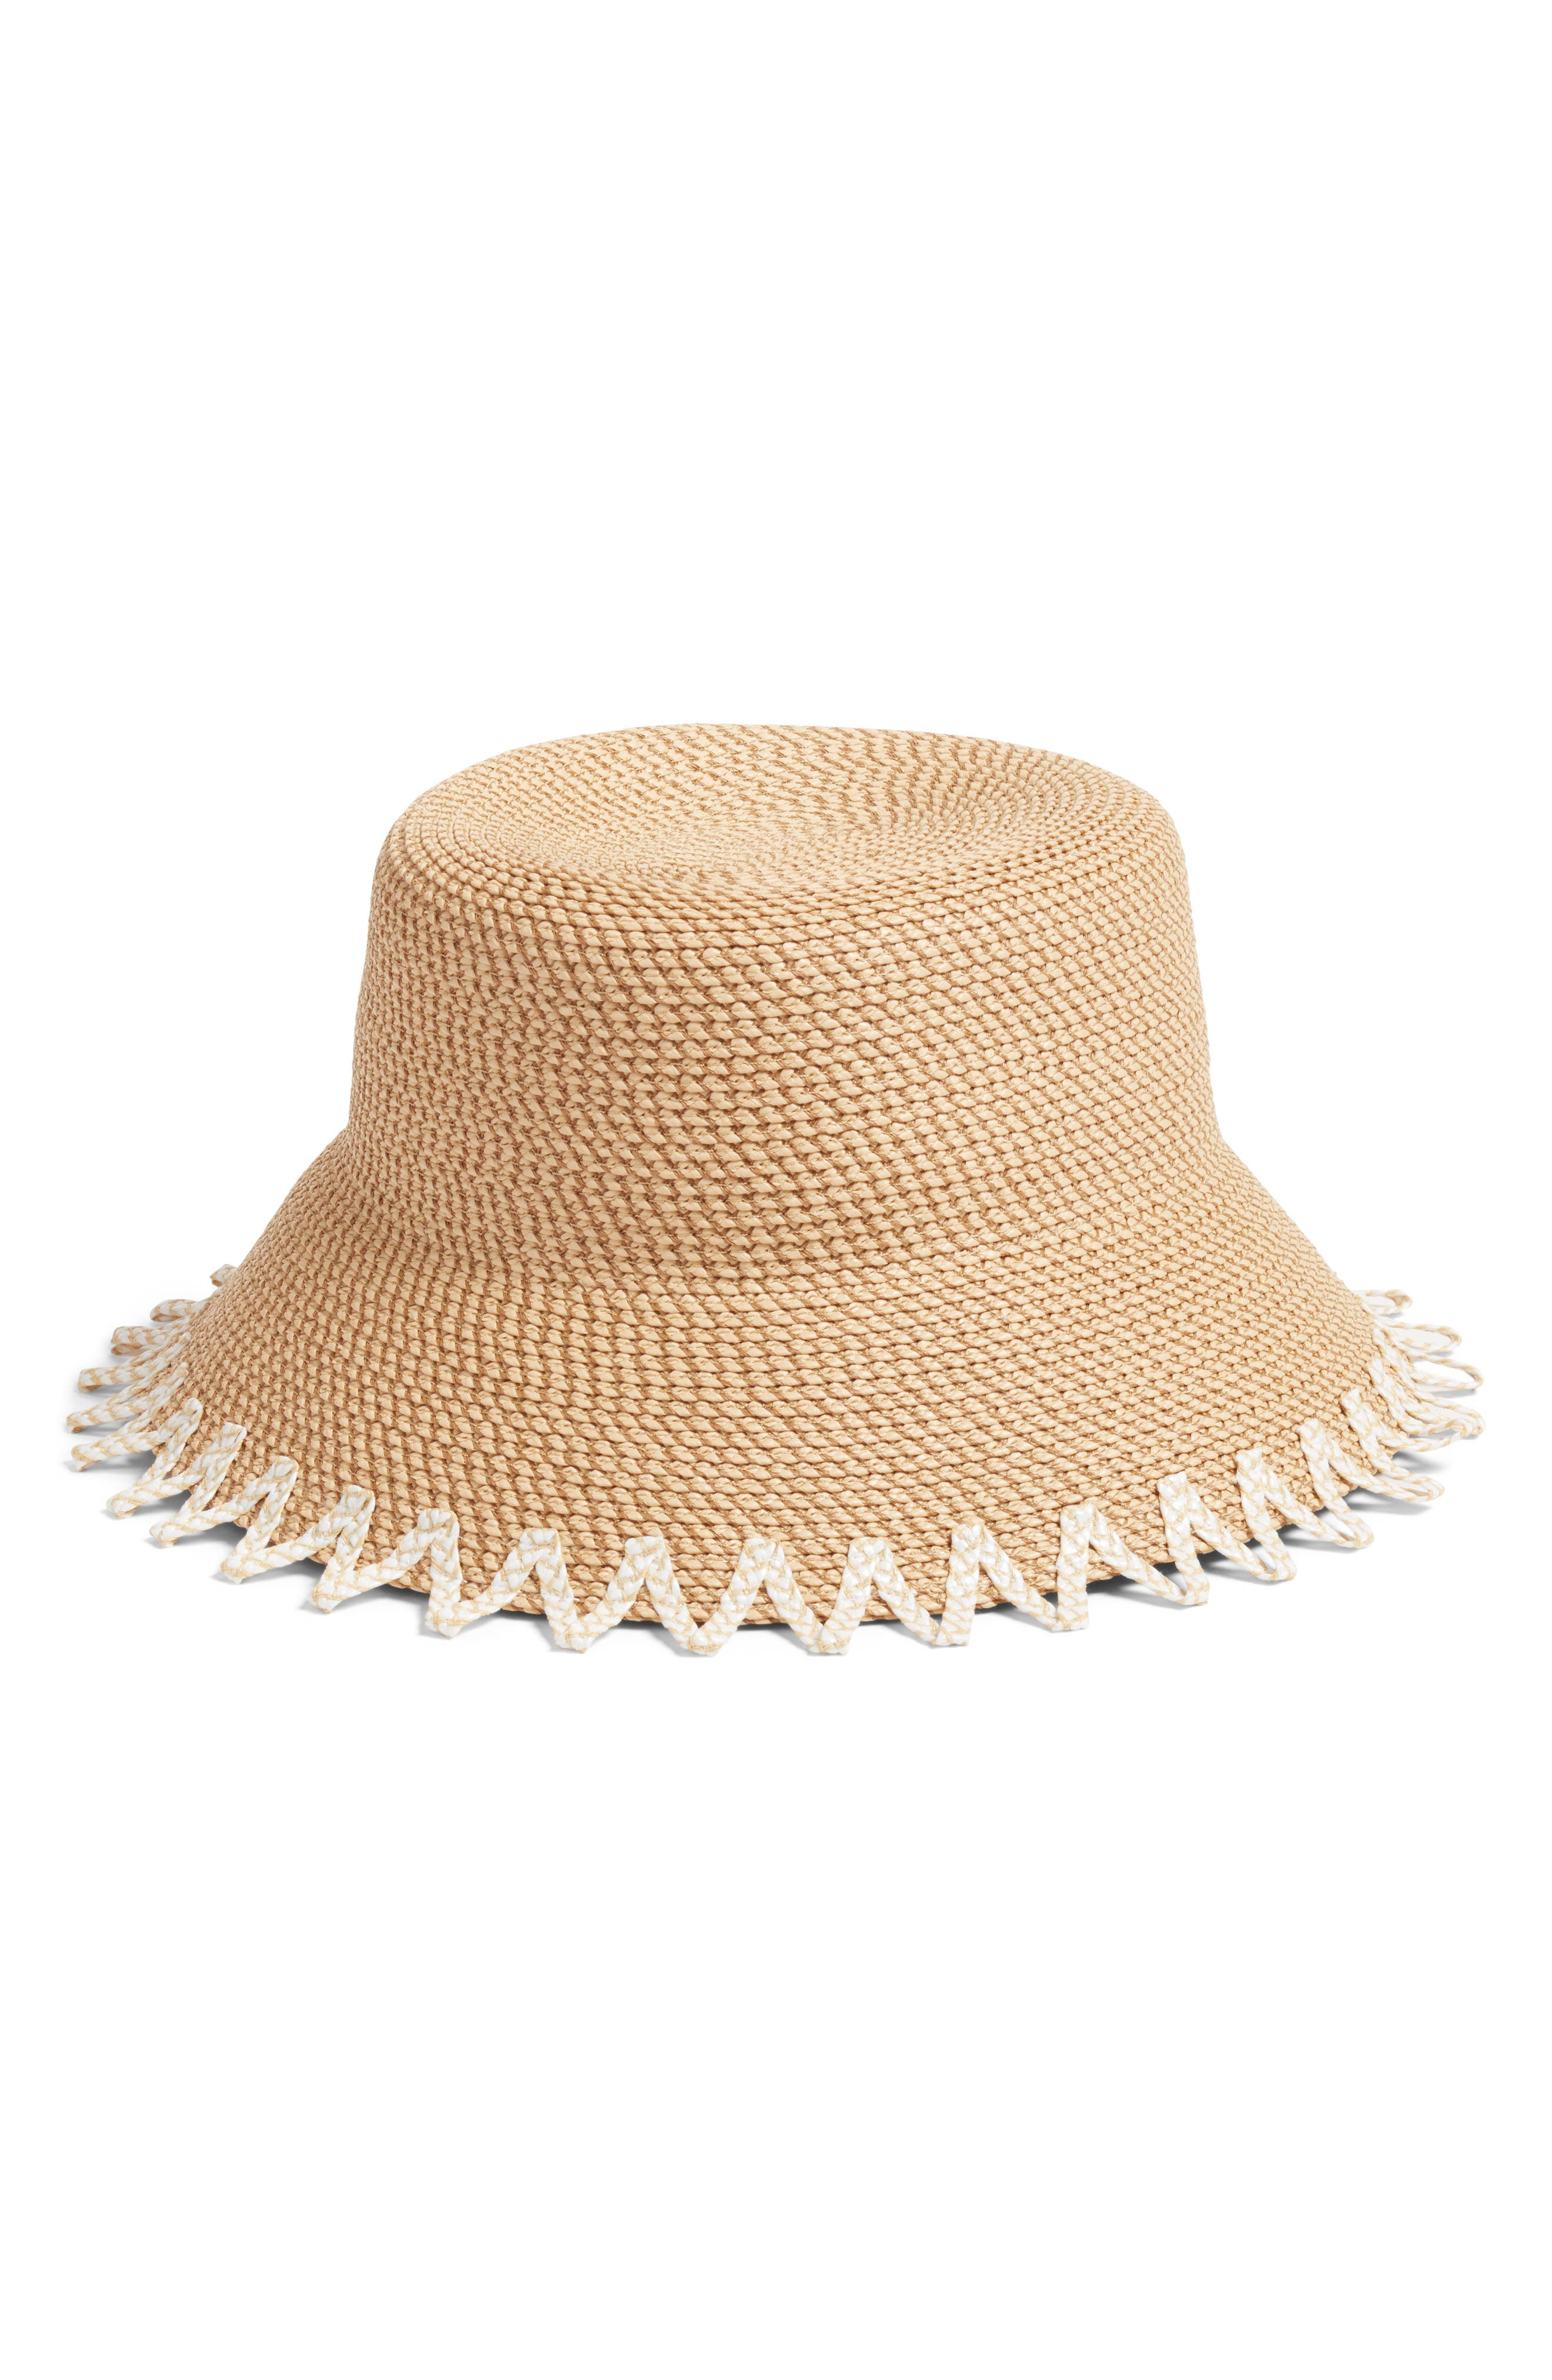 ELOISE SQUISHEE BUCKET HAT - BROWN